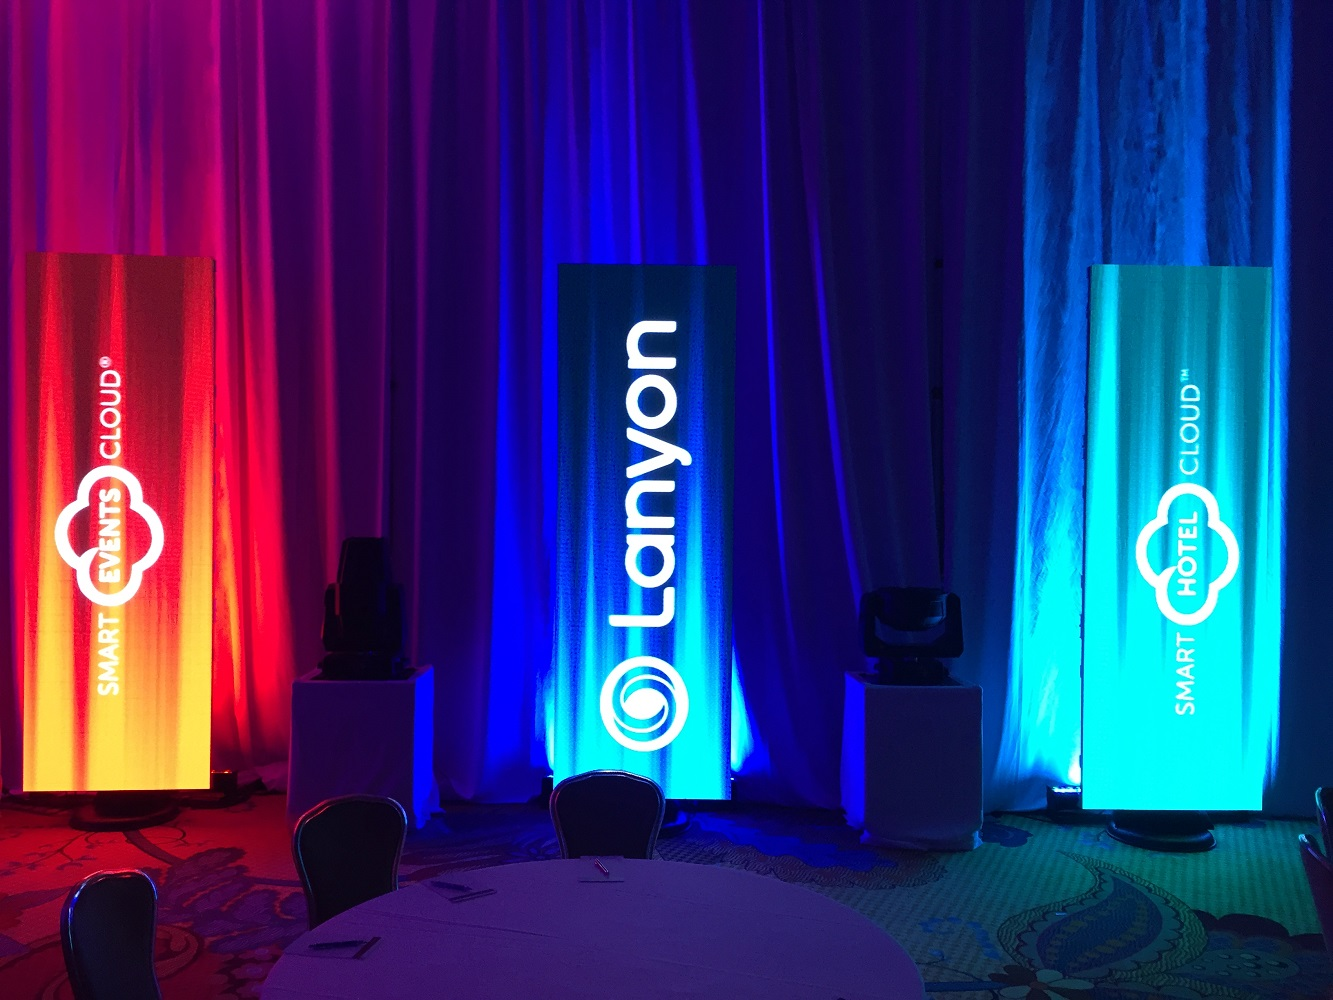 LED walls were used for branding